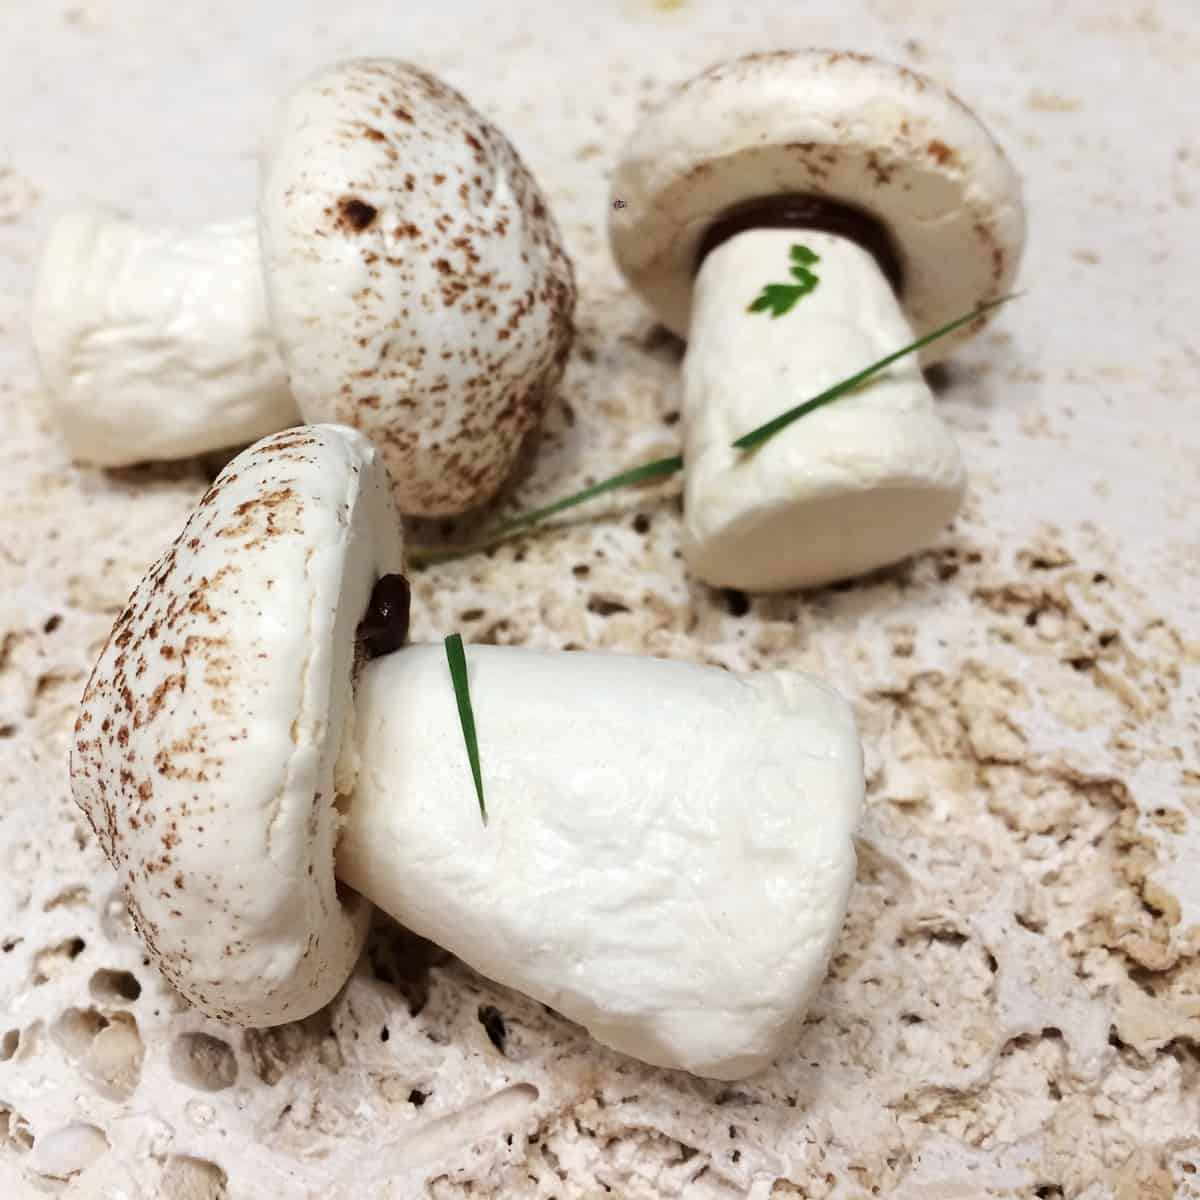 Meringue mushrooms on a stone board: Close up